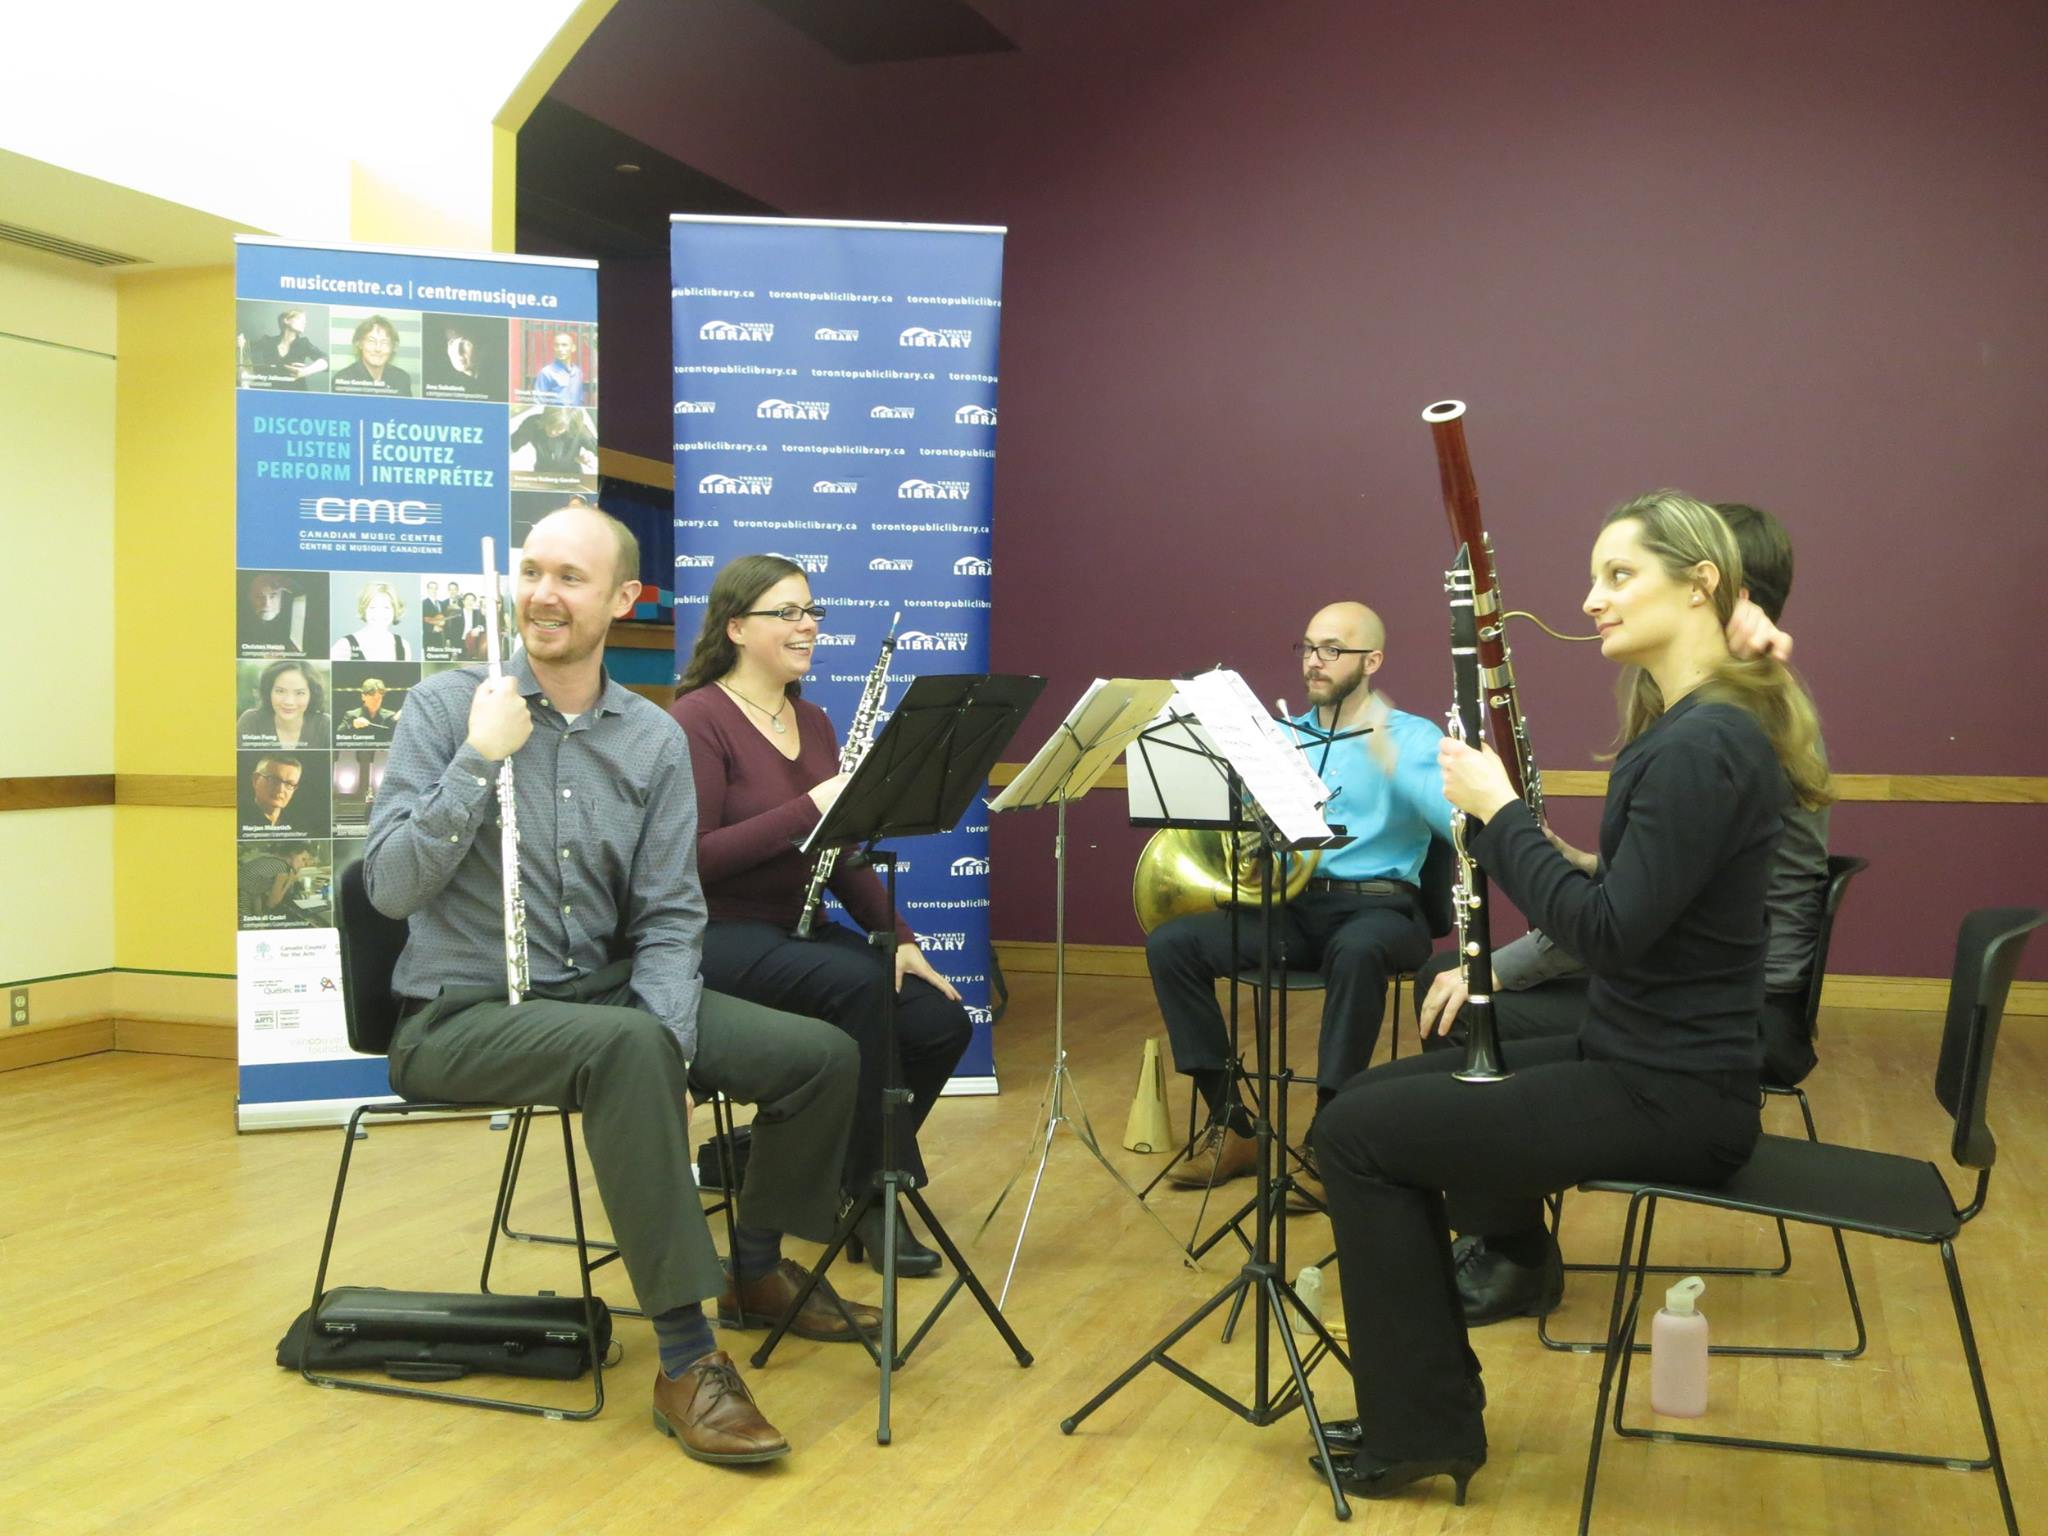 Blythwood Winds perform for New Music 101 at Lillian H. Smith Public Library in Toronto, 2015.